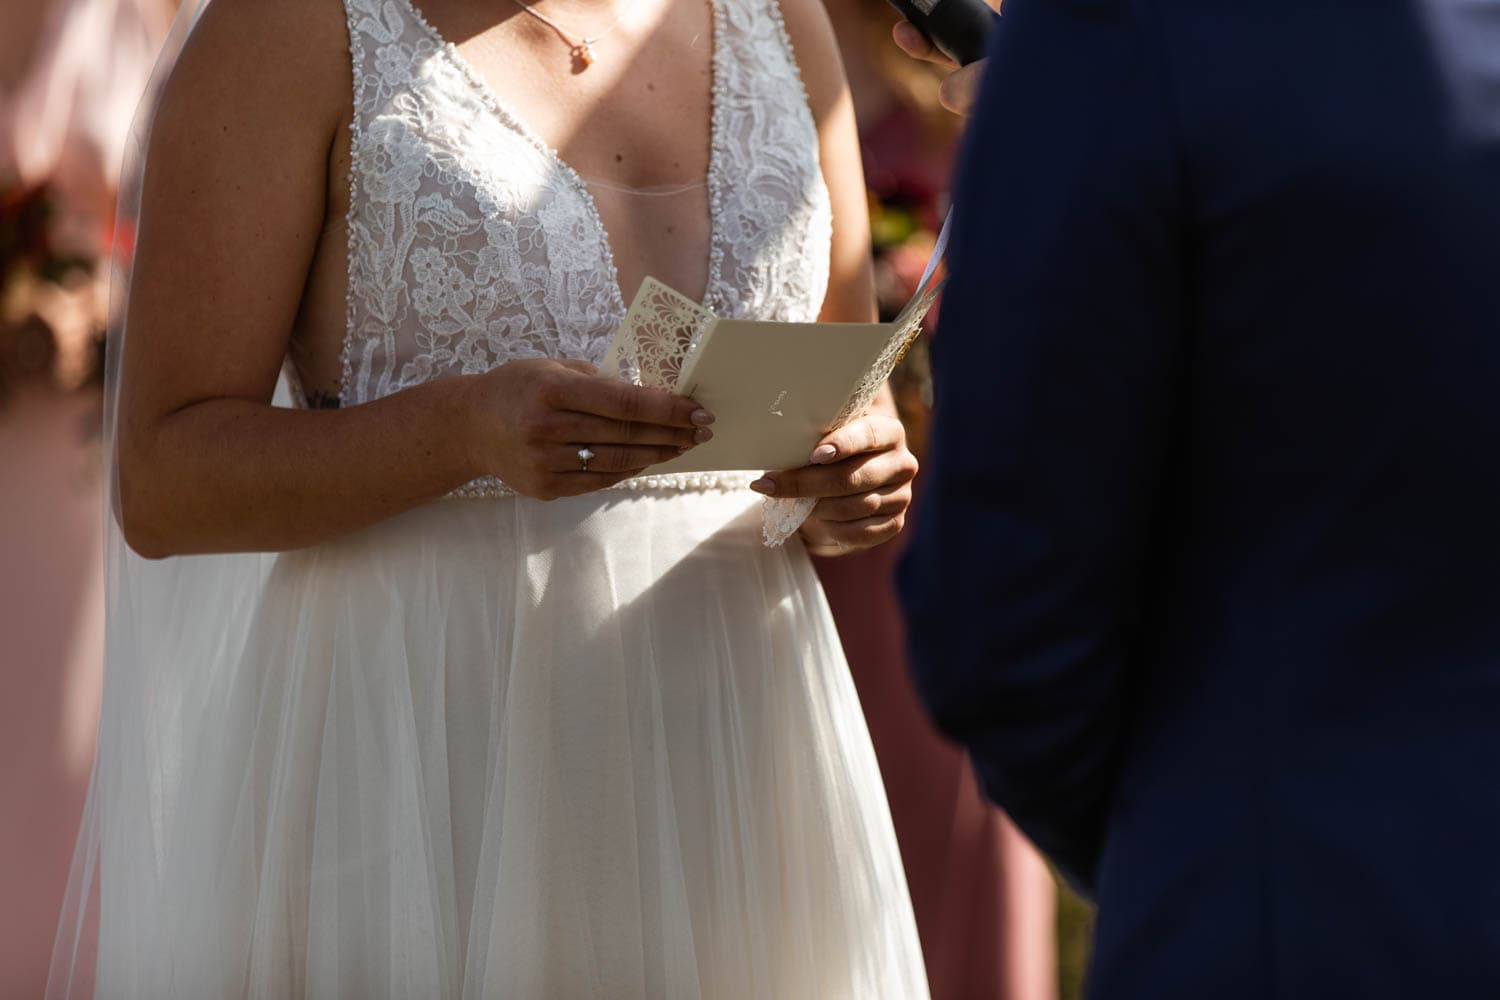 bride reading vows at wedding ceremony